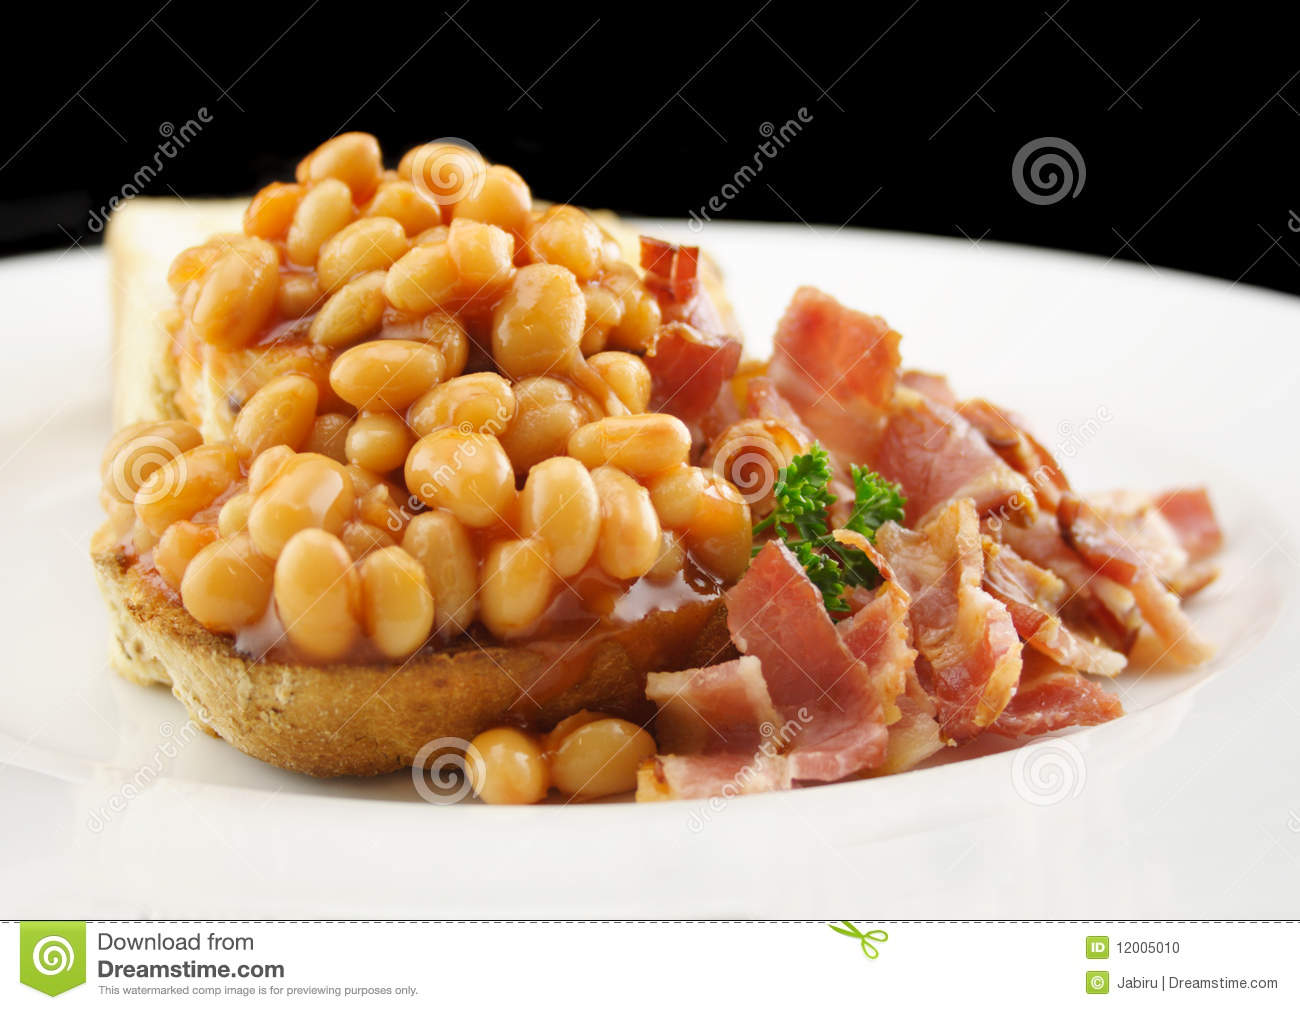 Baked Beans And Bacon On Toast Stock Photo - Image: 12005010